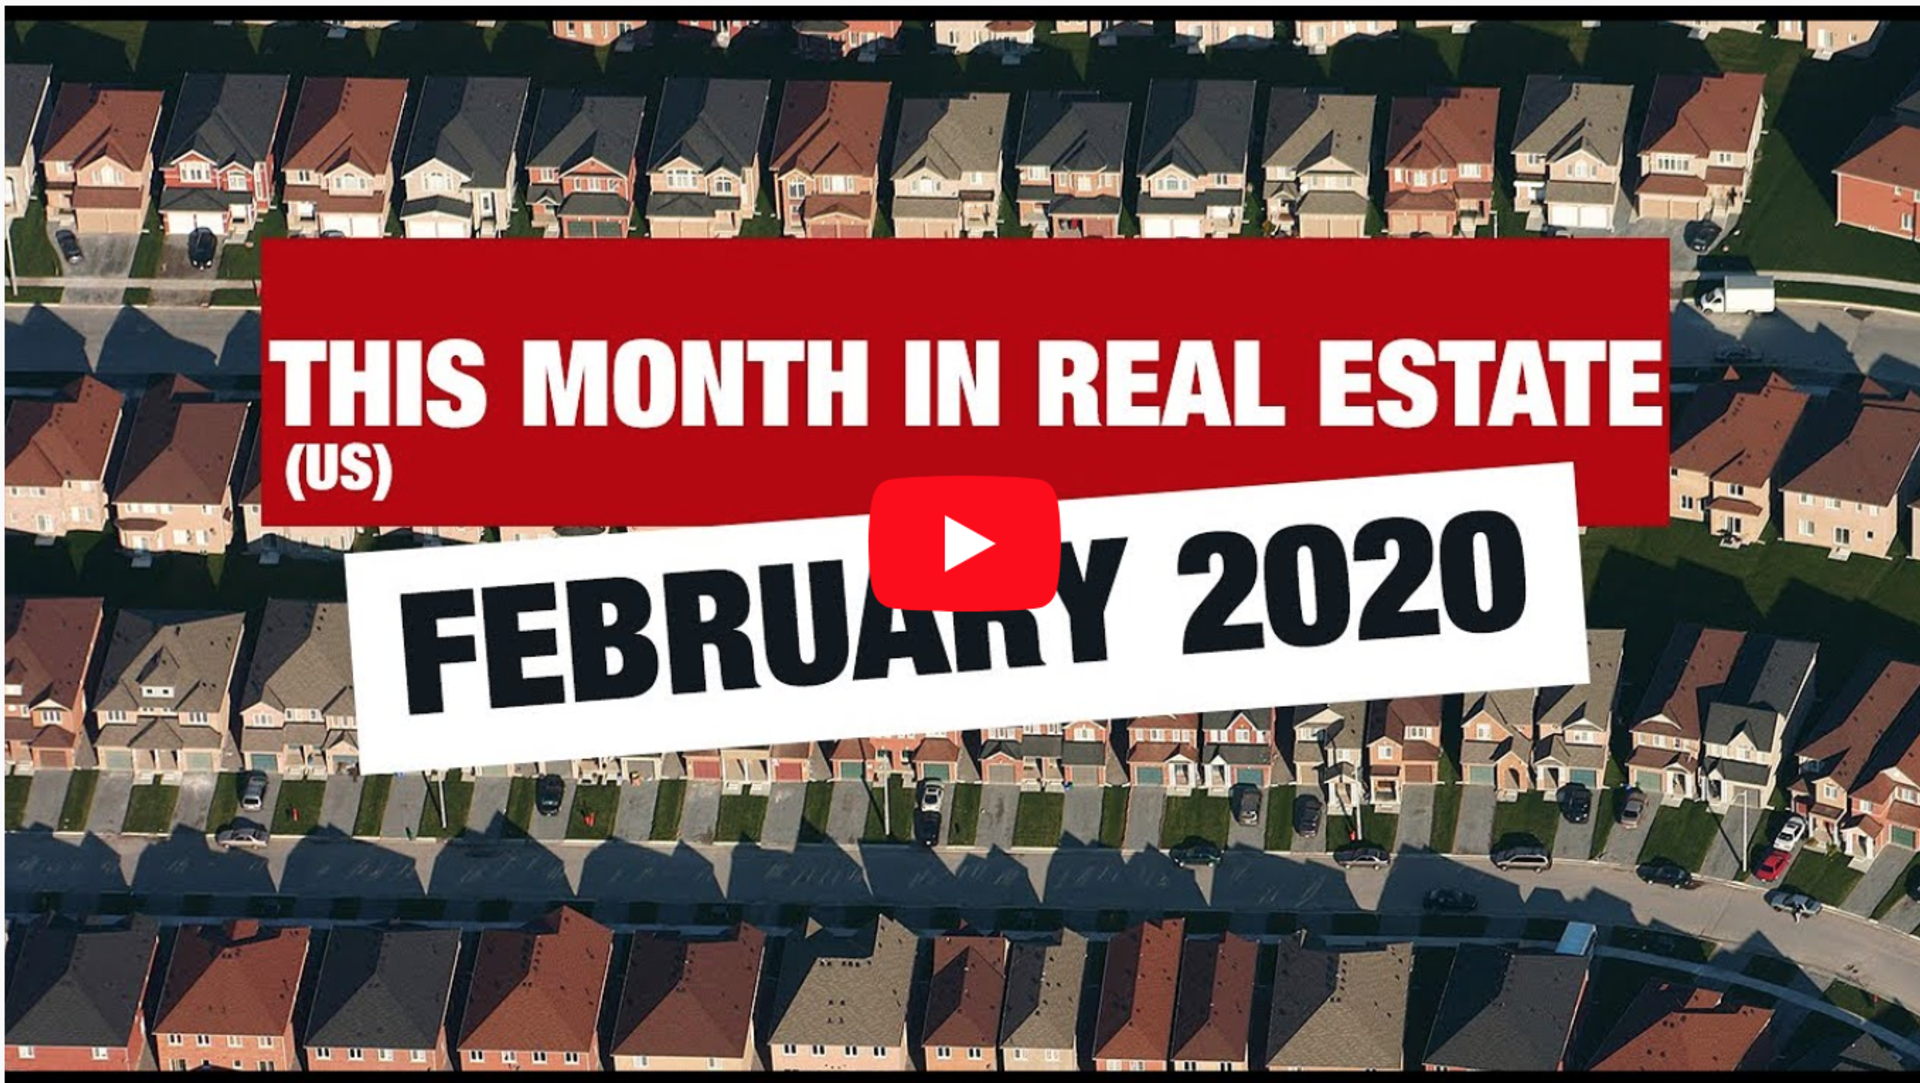 This Month in Real Estate February 2020